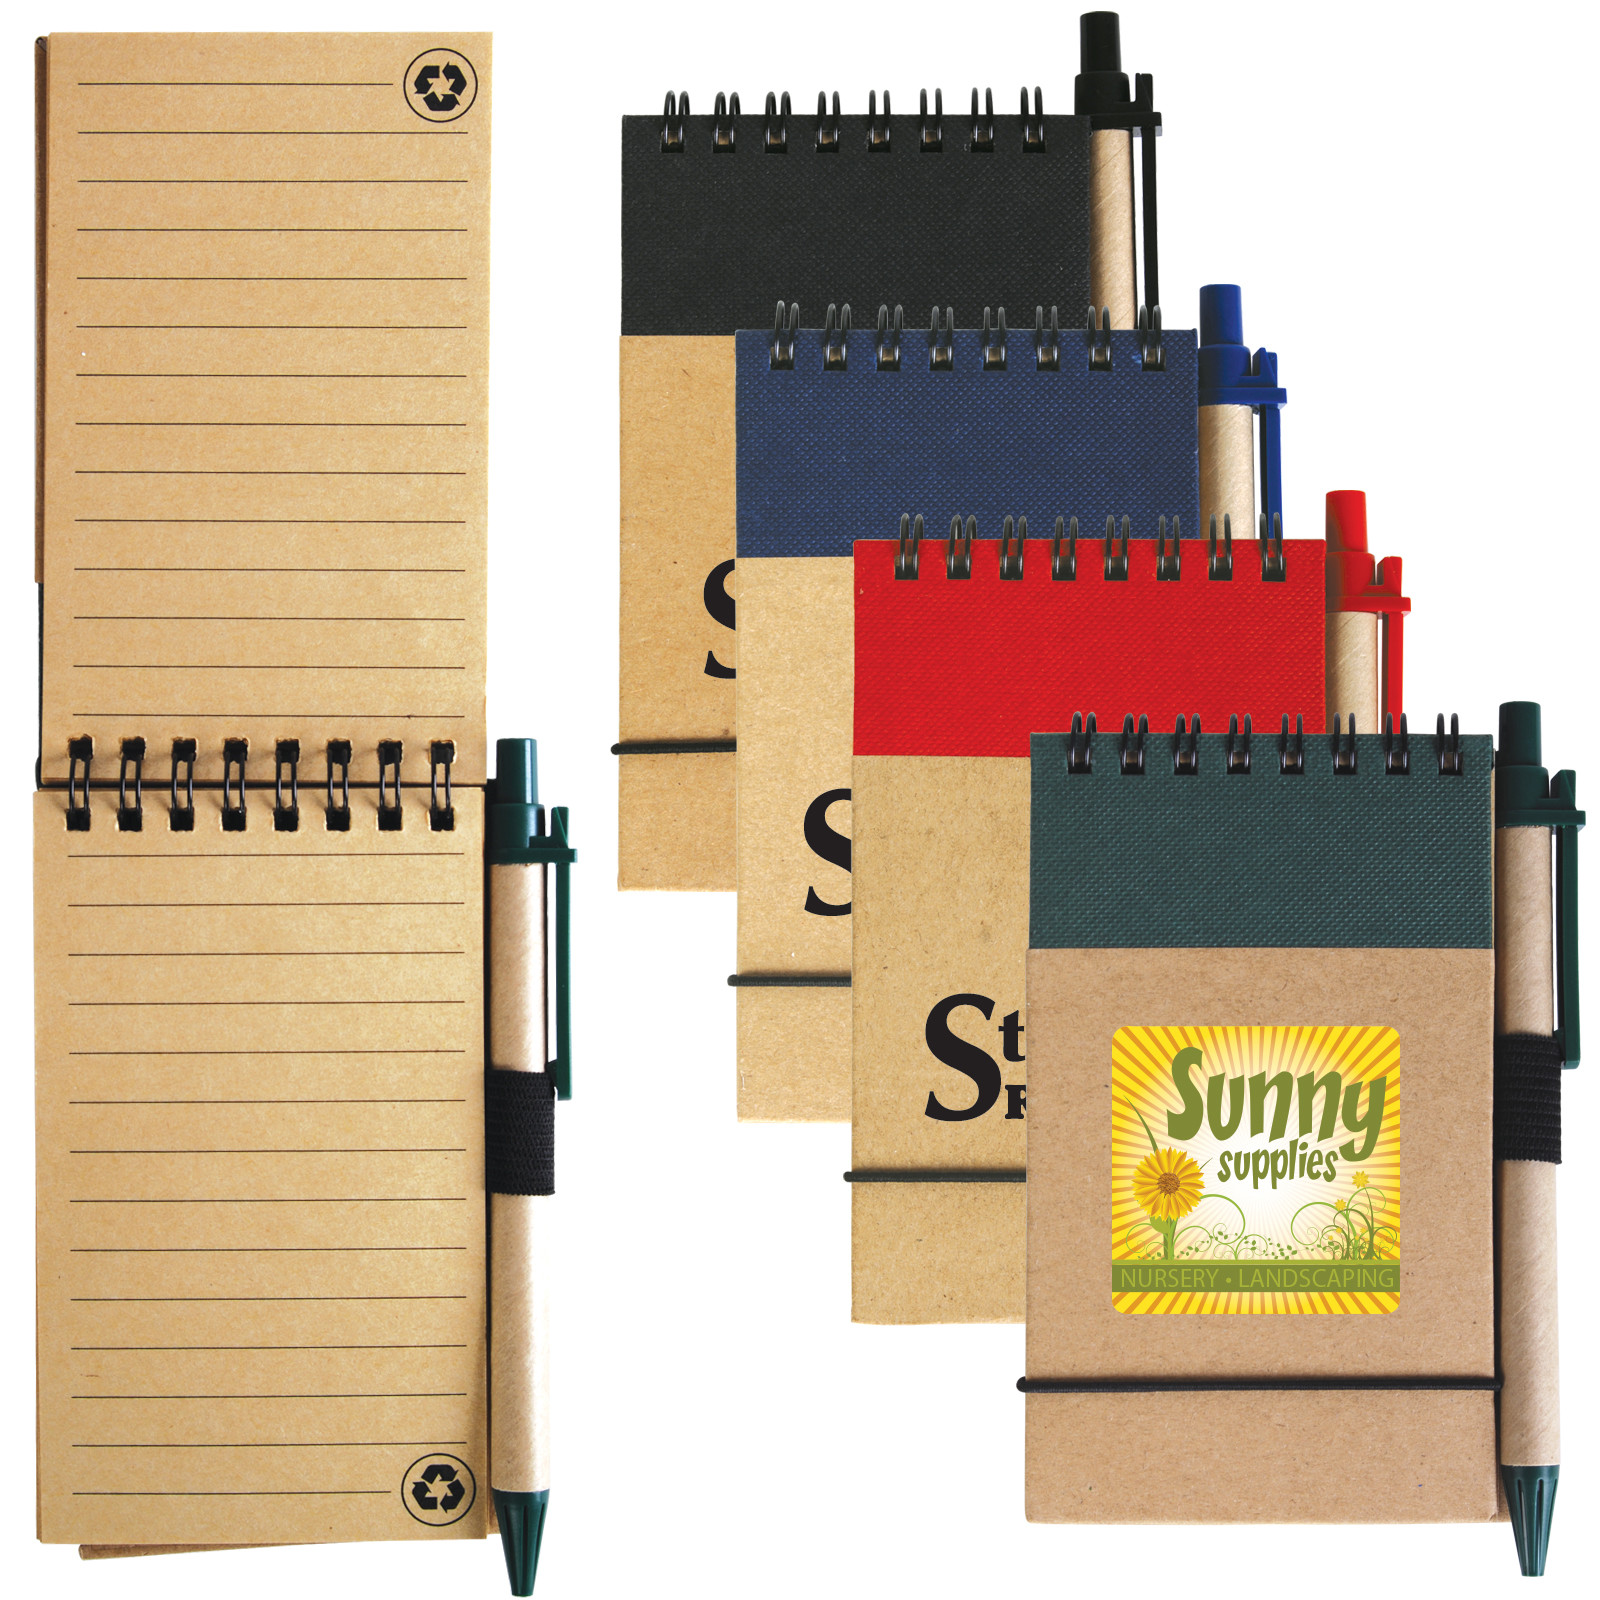 Tradie Cardboard Notebook with Pen - 1 Col 1 Pos Print on Notebook